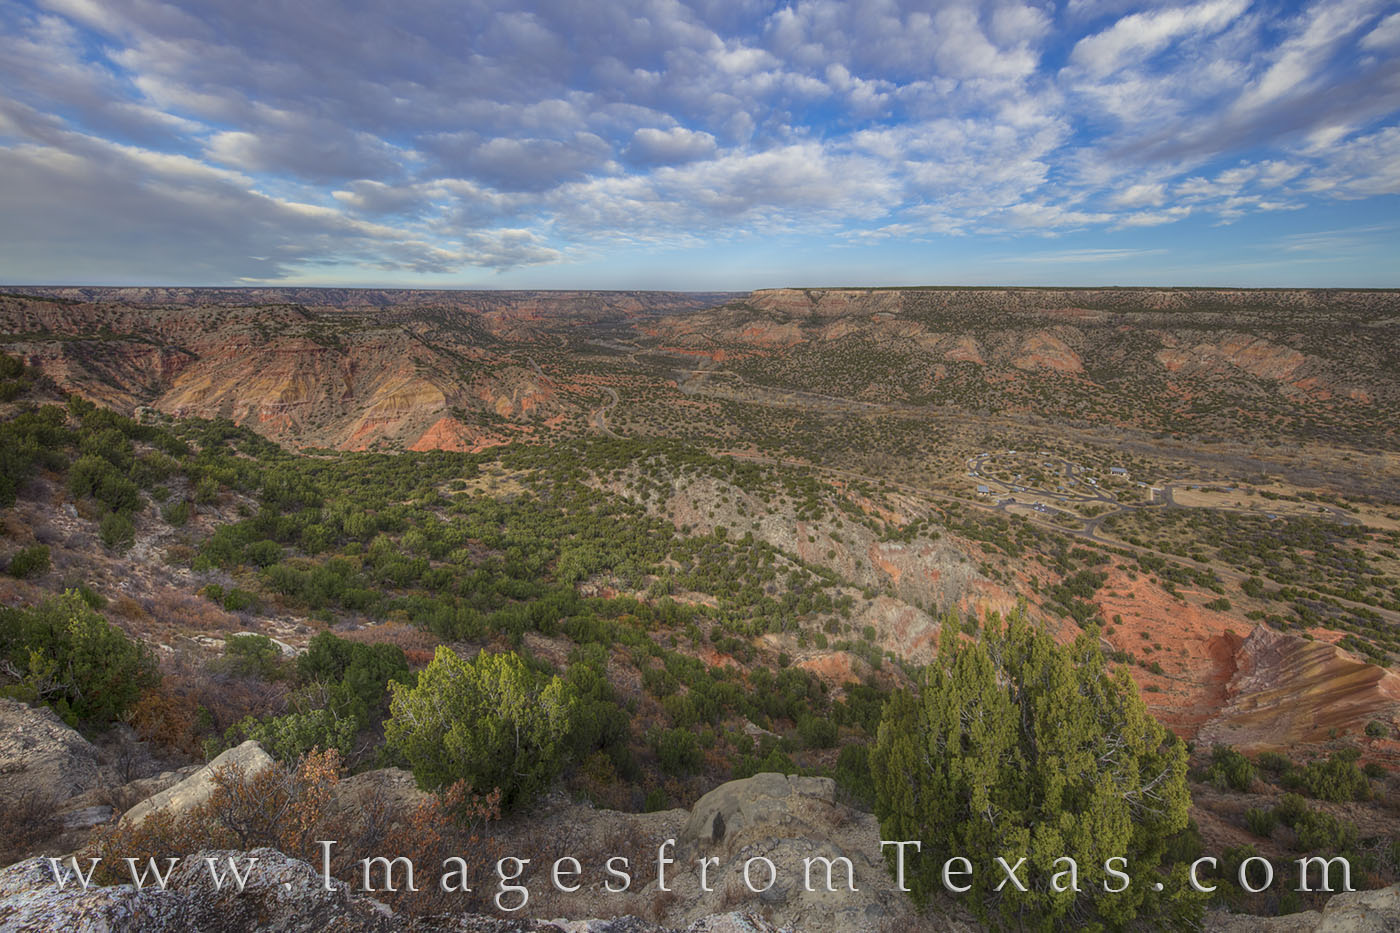 From the edge of the canyon rim in Palo Duro Canyon State Park in the Texas panhandle, the beautiful landscape spreads out across...